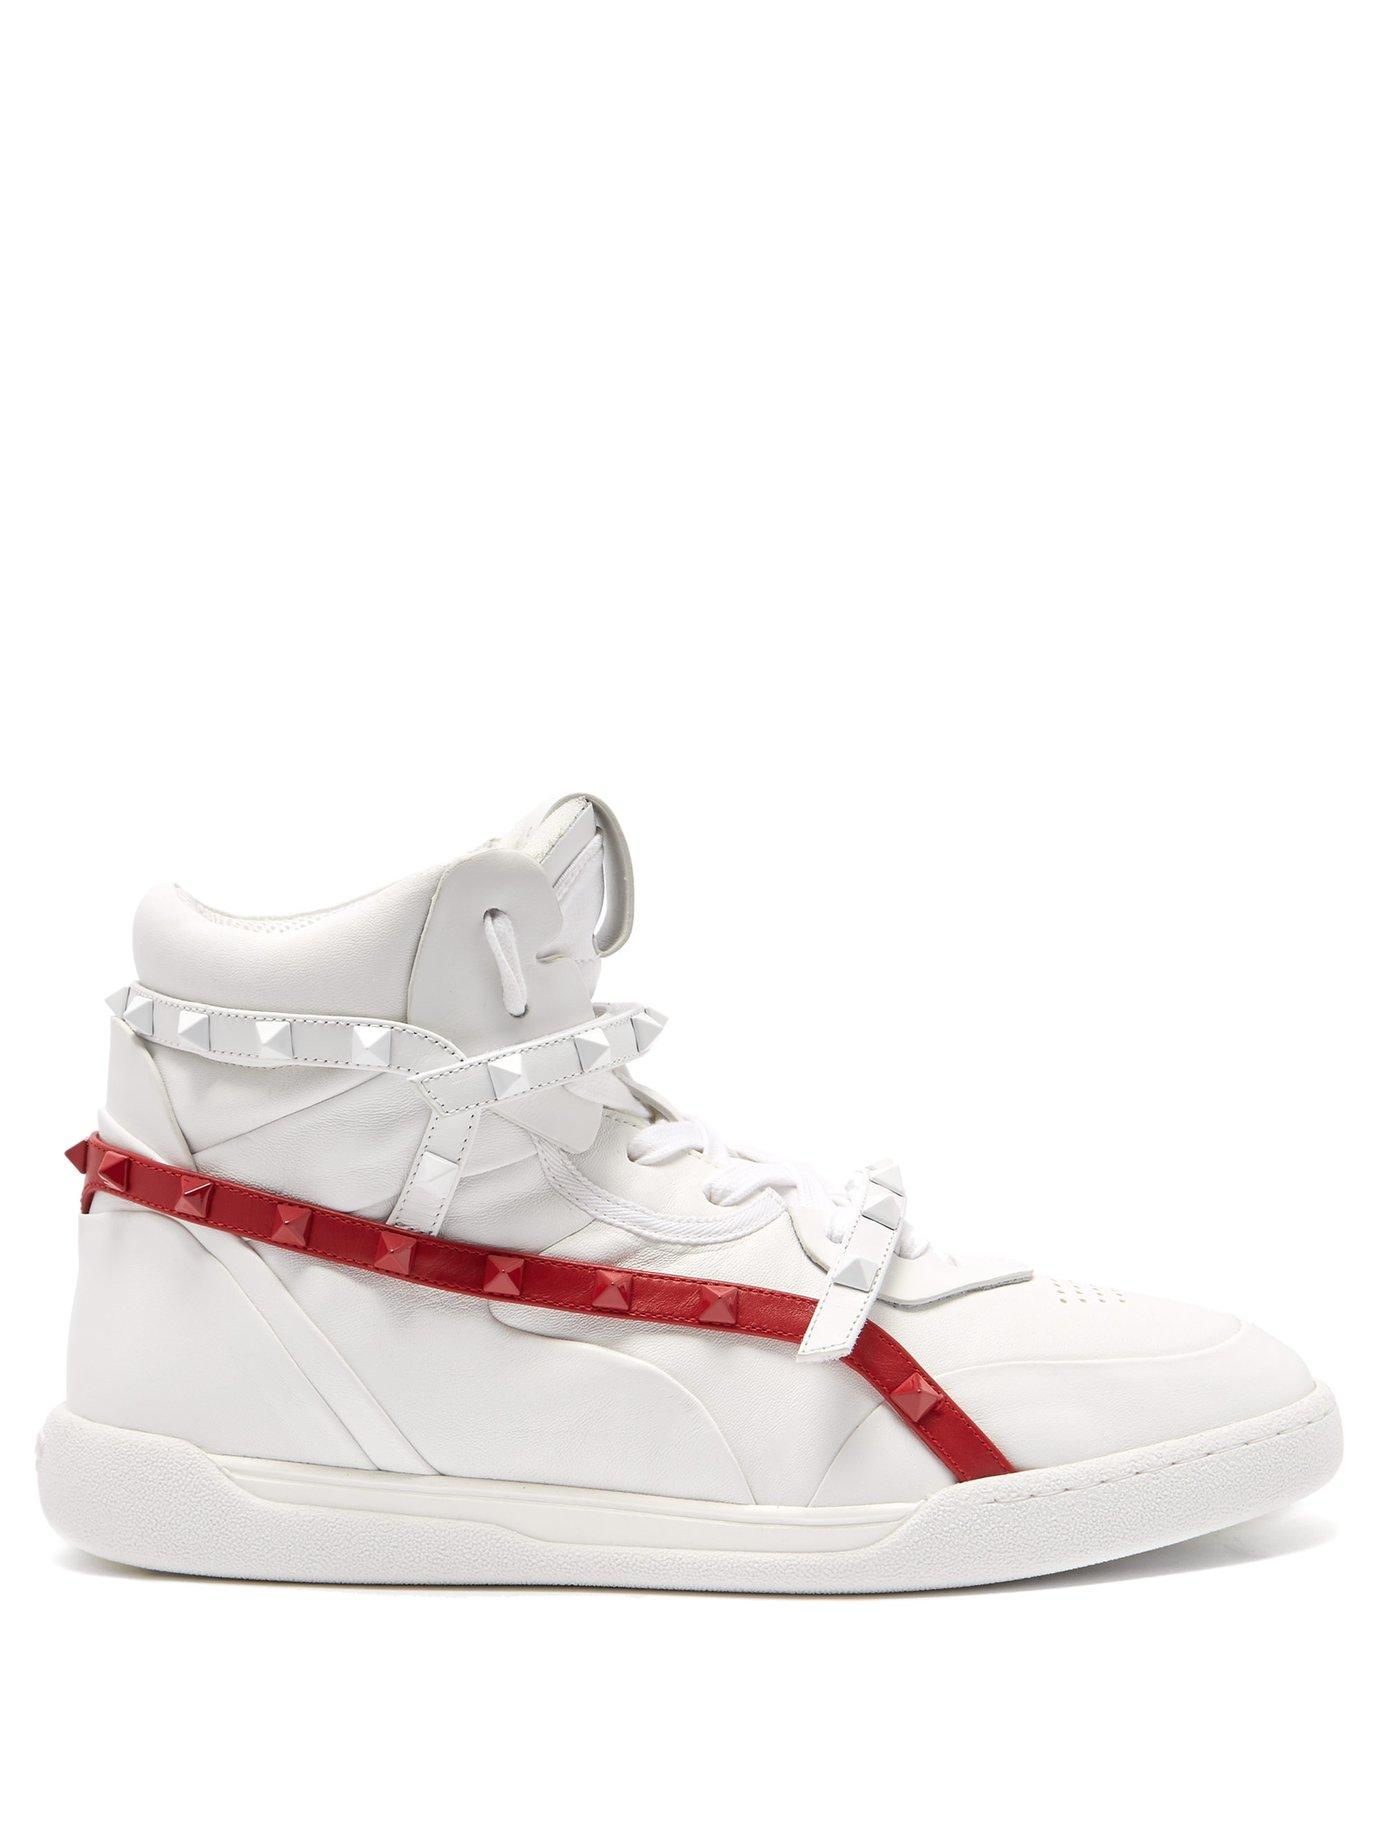 d27a682f258 Lyst - Valentino Rockstud Amor High Top Leather Trainers